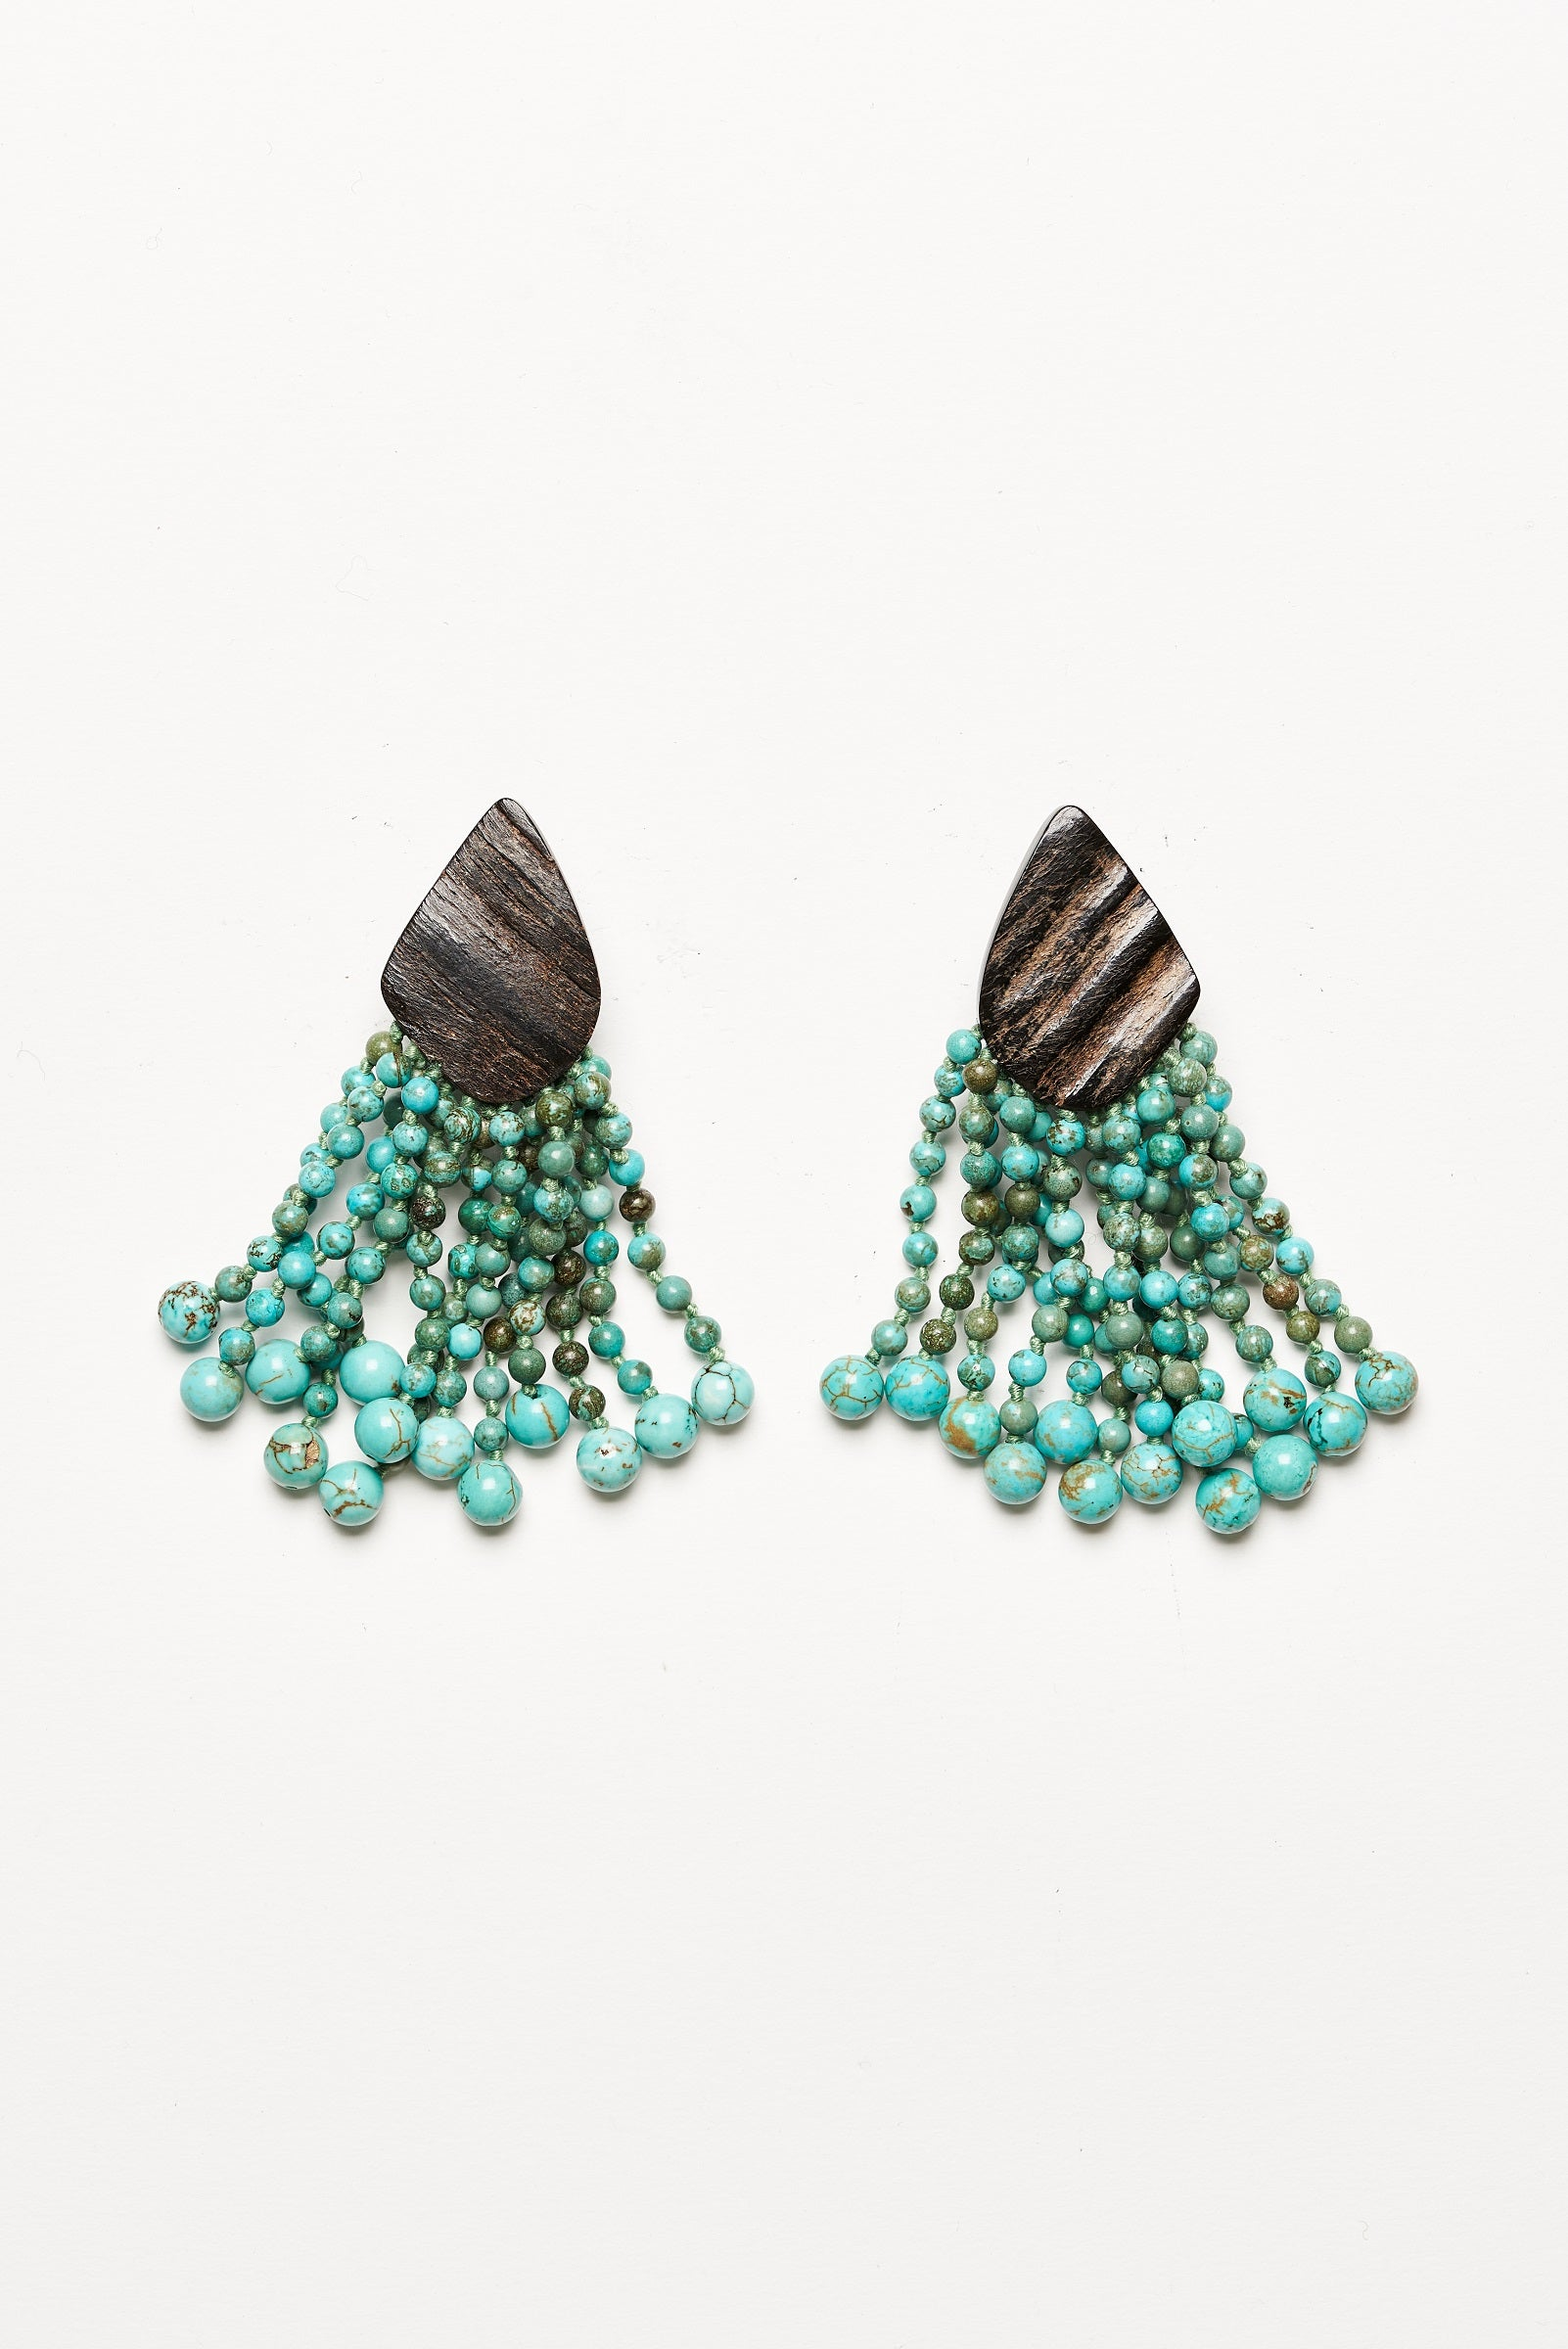 Earrings in turquoise and horn